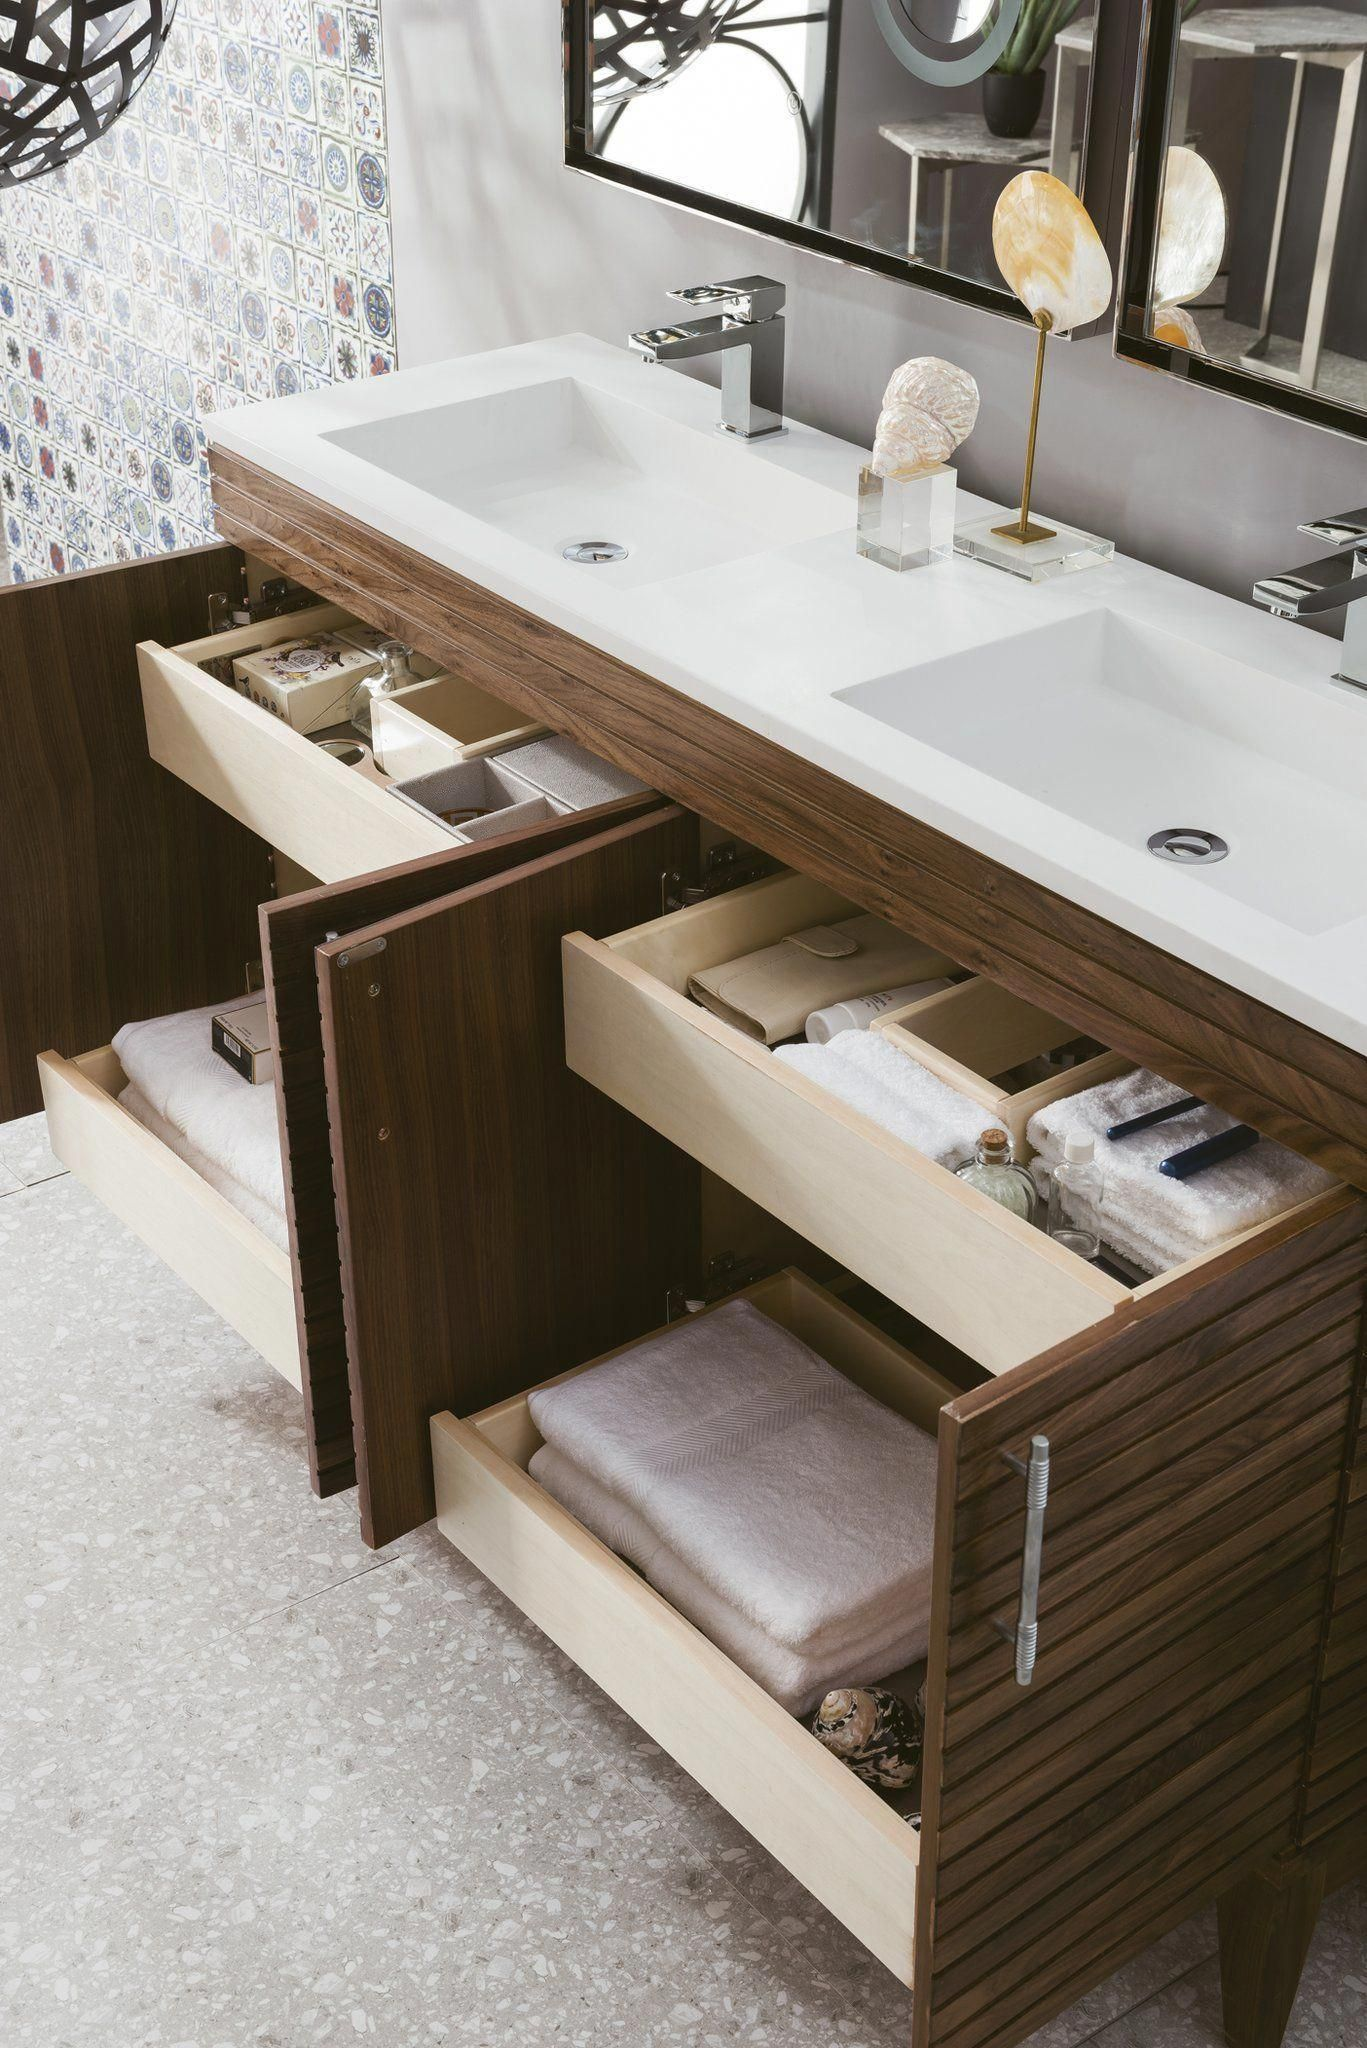 Pull Out Drawers Maybe Just One Side Lineage 59 Double Vanity Mid Century Walnut Masterbathroom Bathroom Layout Bathroom Interior Bathroom Design [ 2048 x 1367 Pixel ]